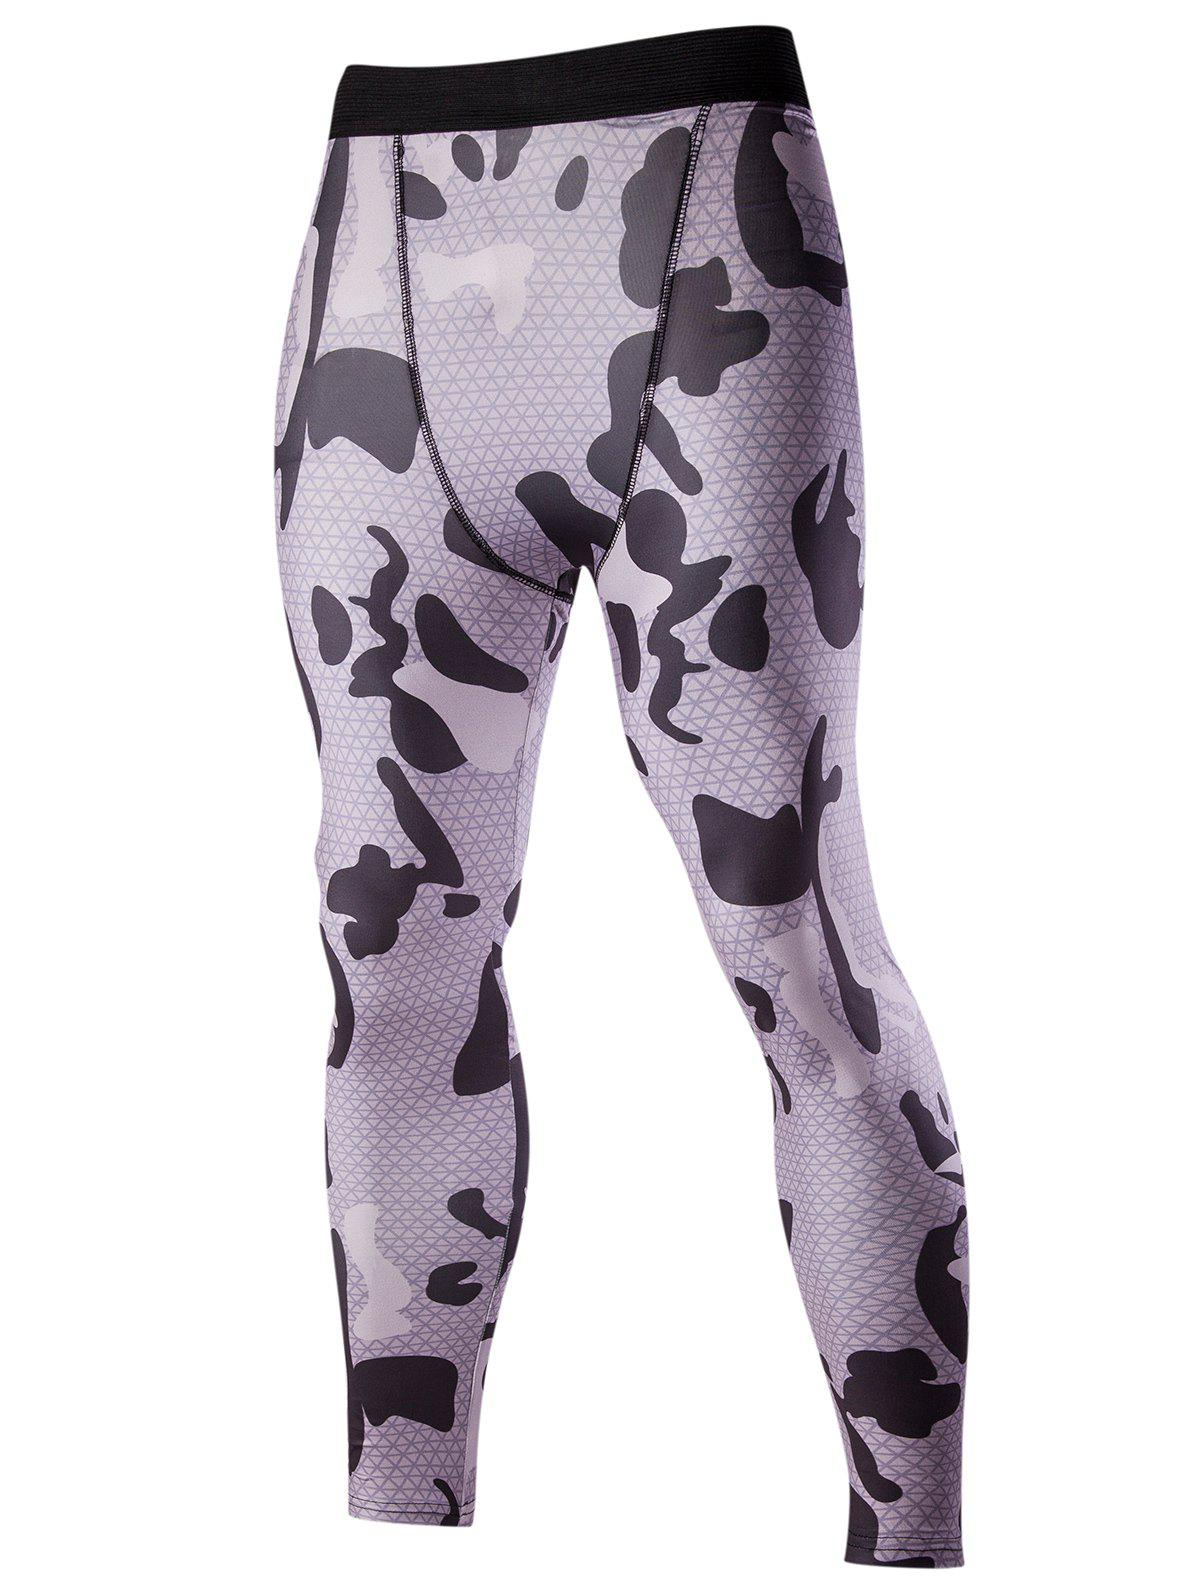 Men's Elastic Waist Camouflage Pattern Fitted Training Pants - DEEP GRAY M